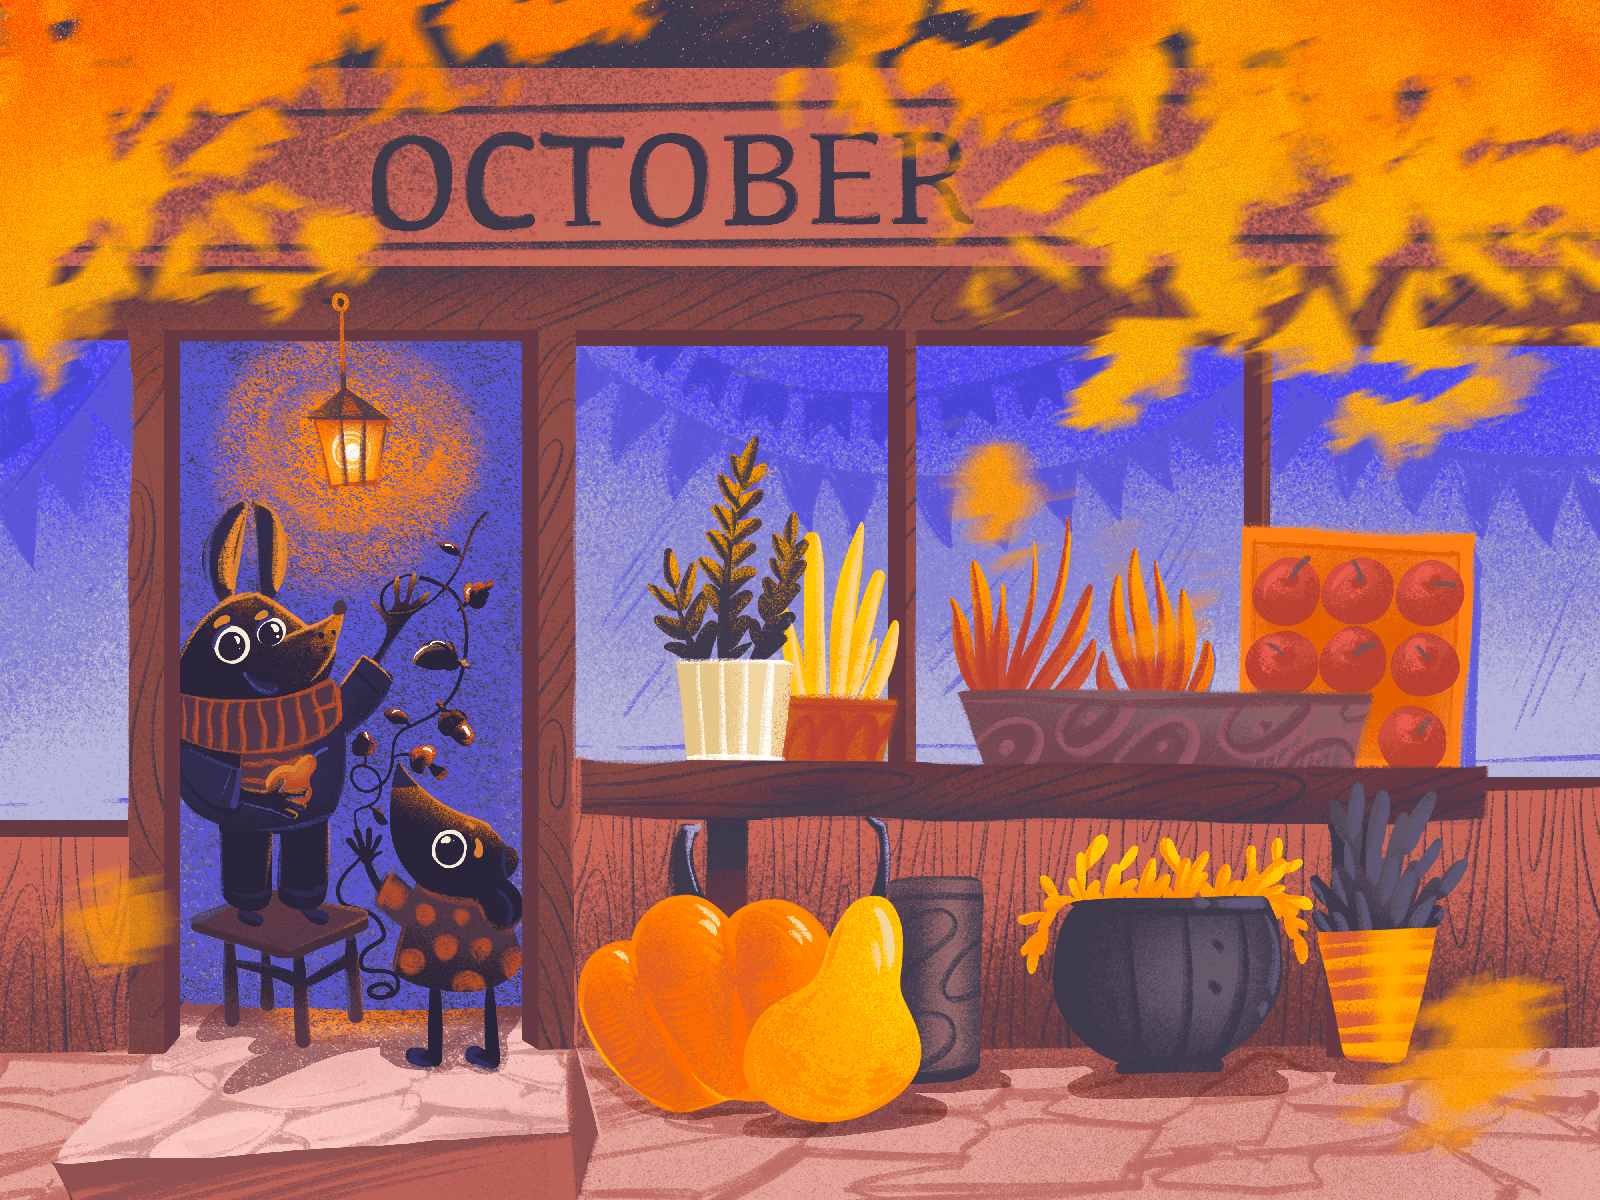 Cosy October Illustration